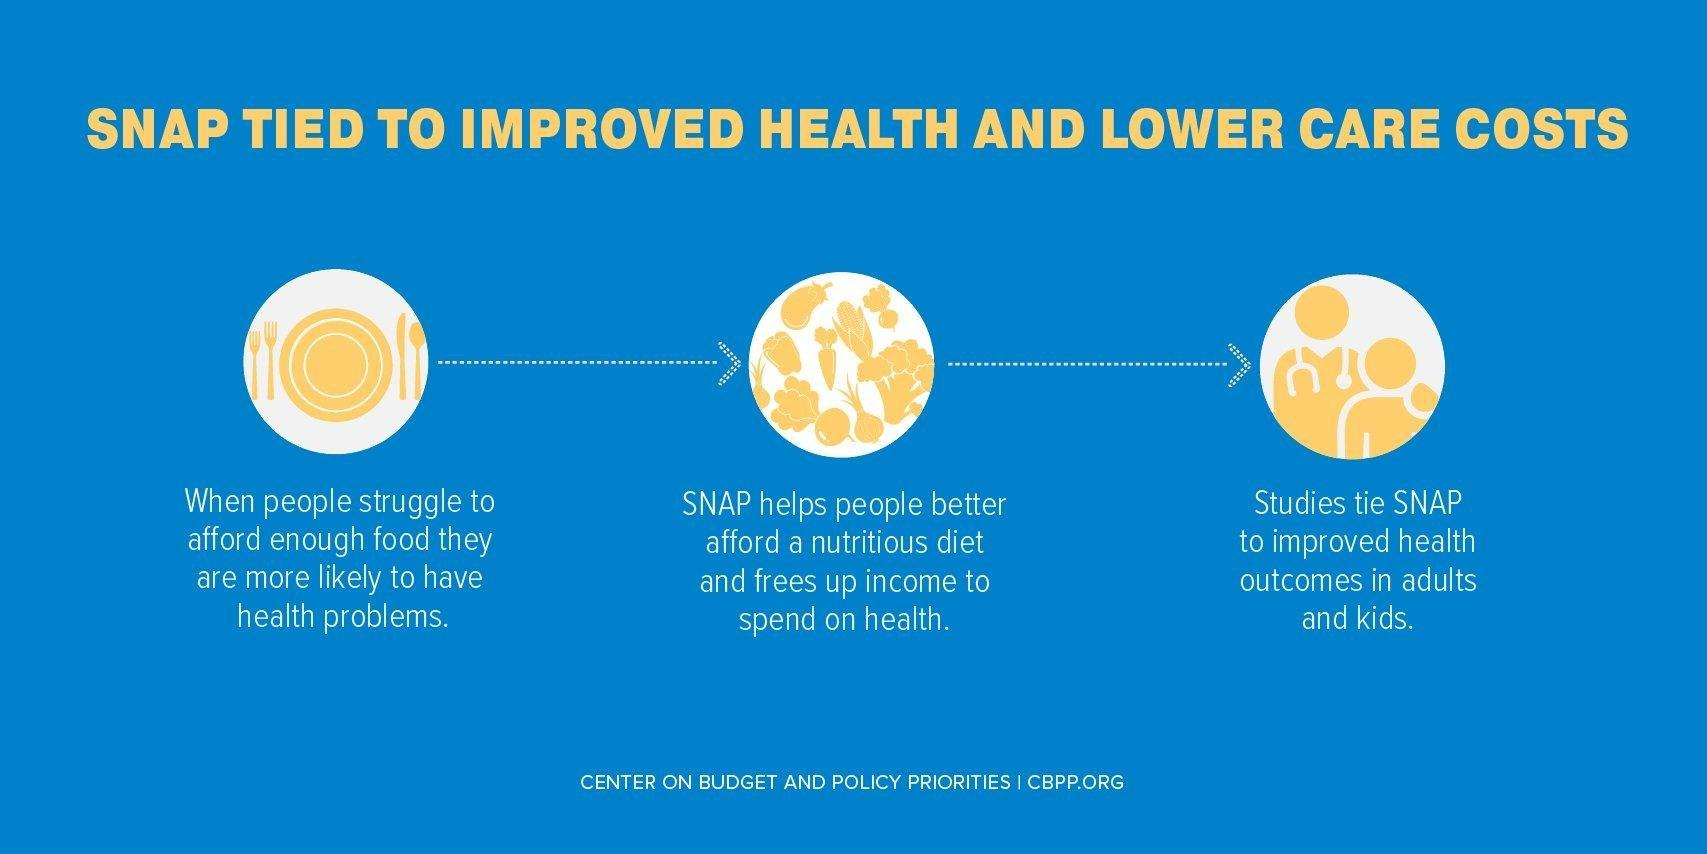 Snap Is Linked With Improved Nutritional Outcomes And Lower Health Care Costs